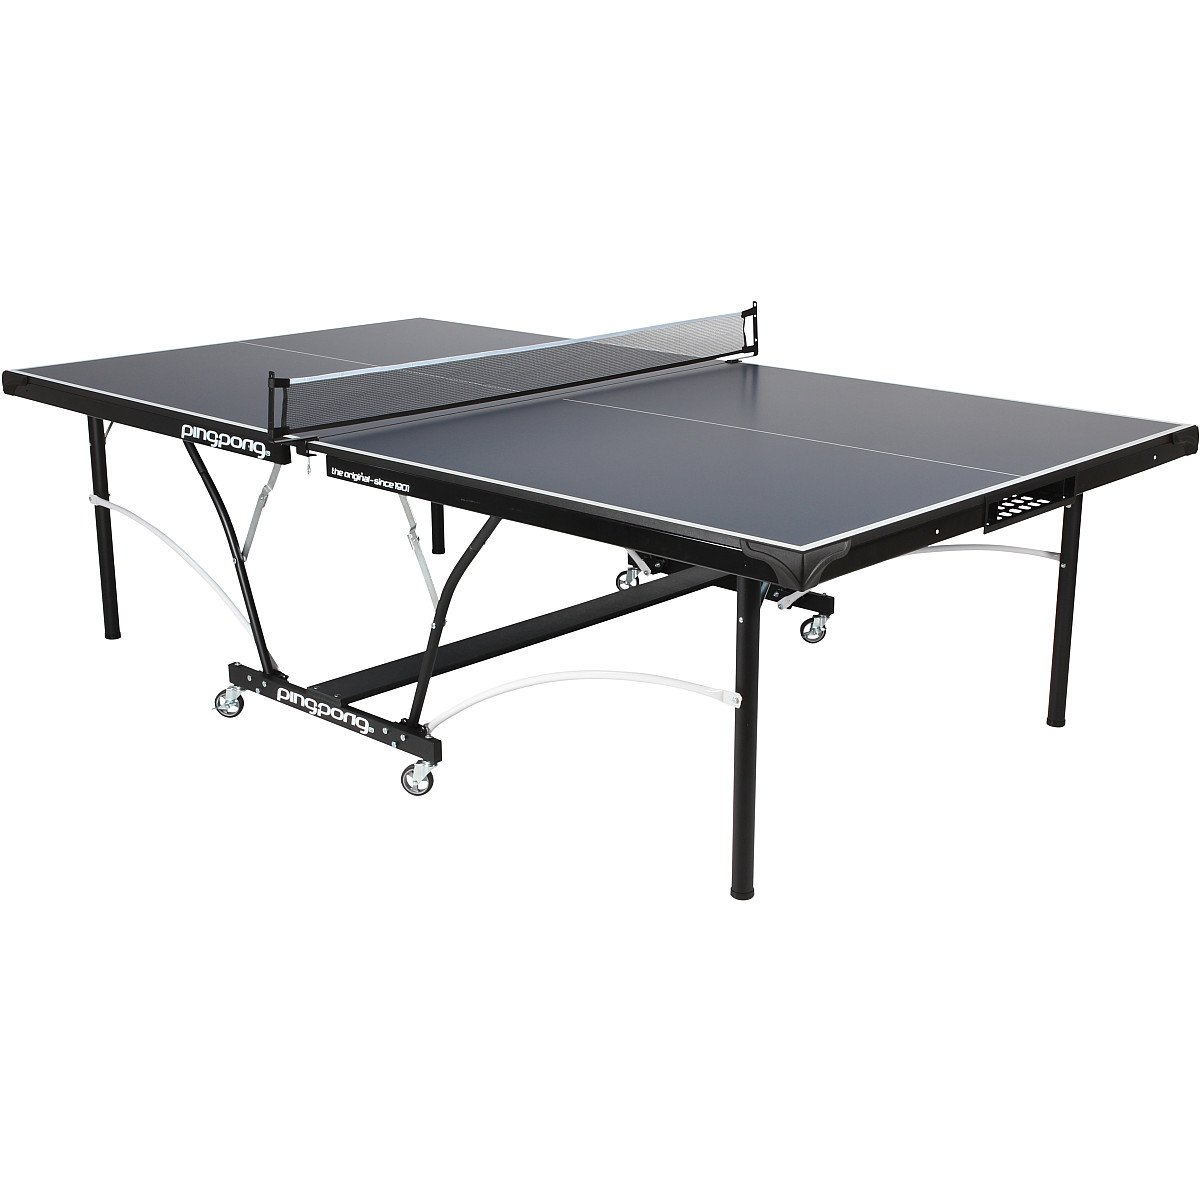 PING-PONG Ultra II Table Tennis Table by ping pong